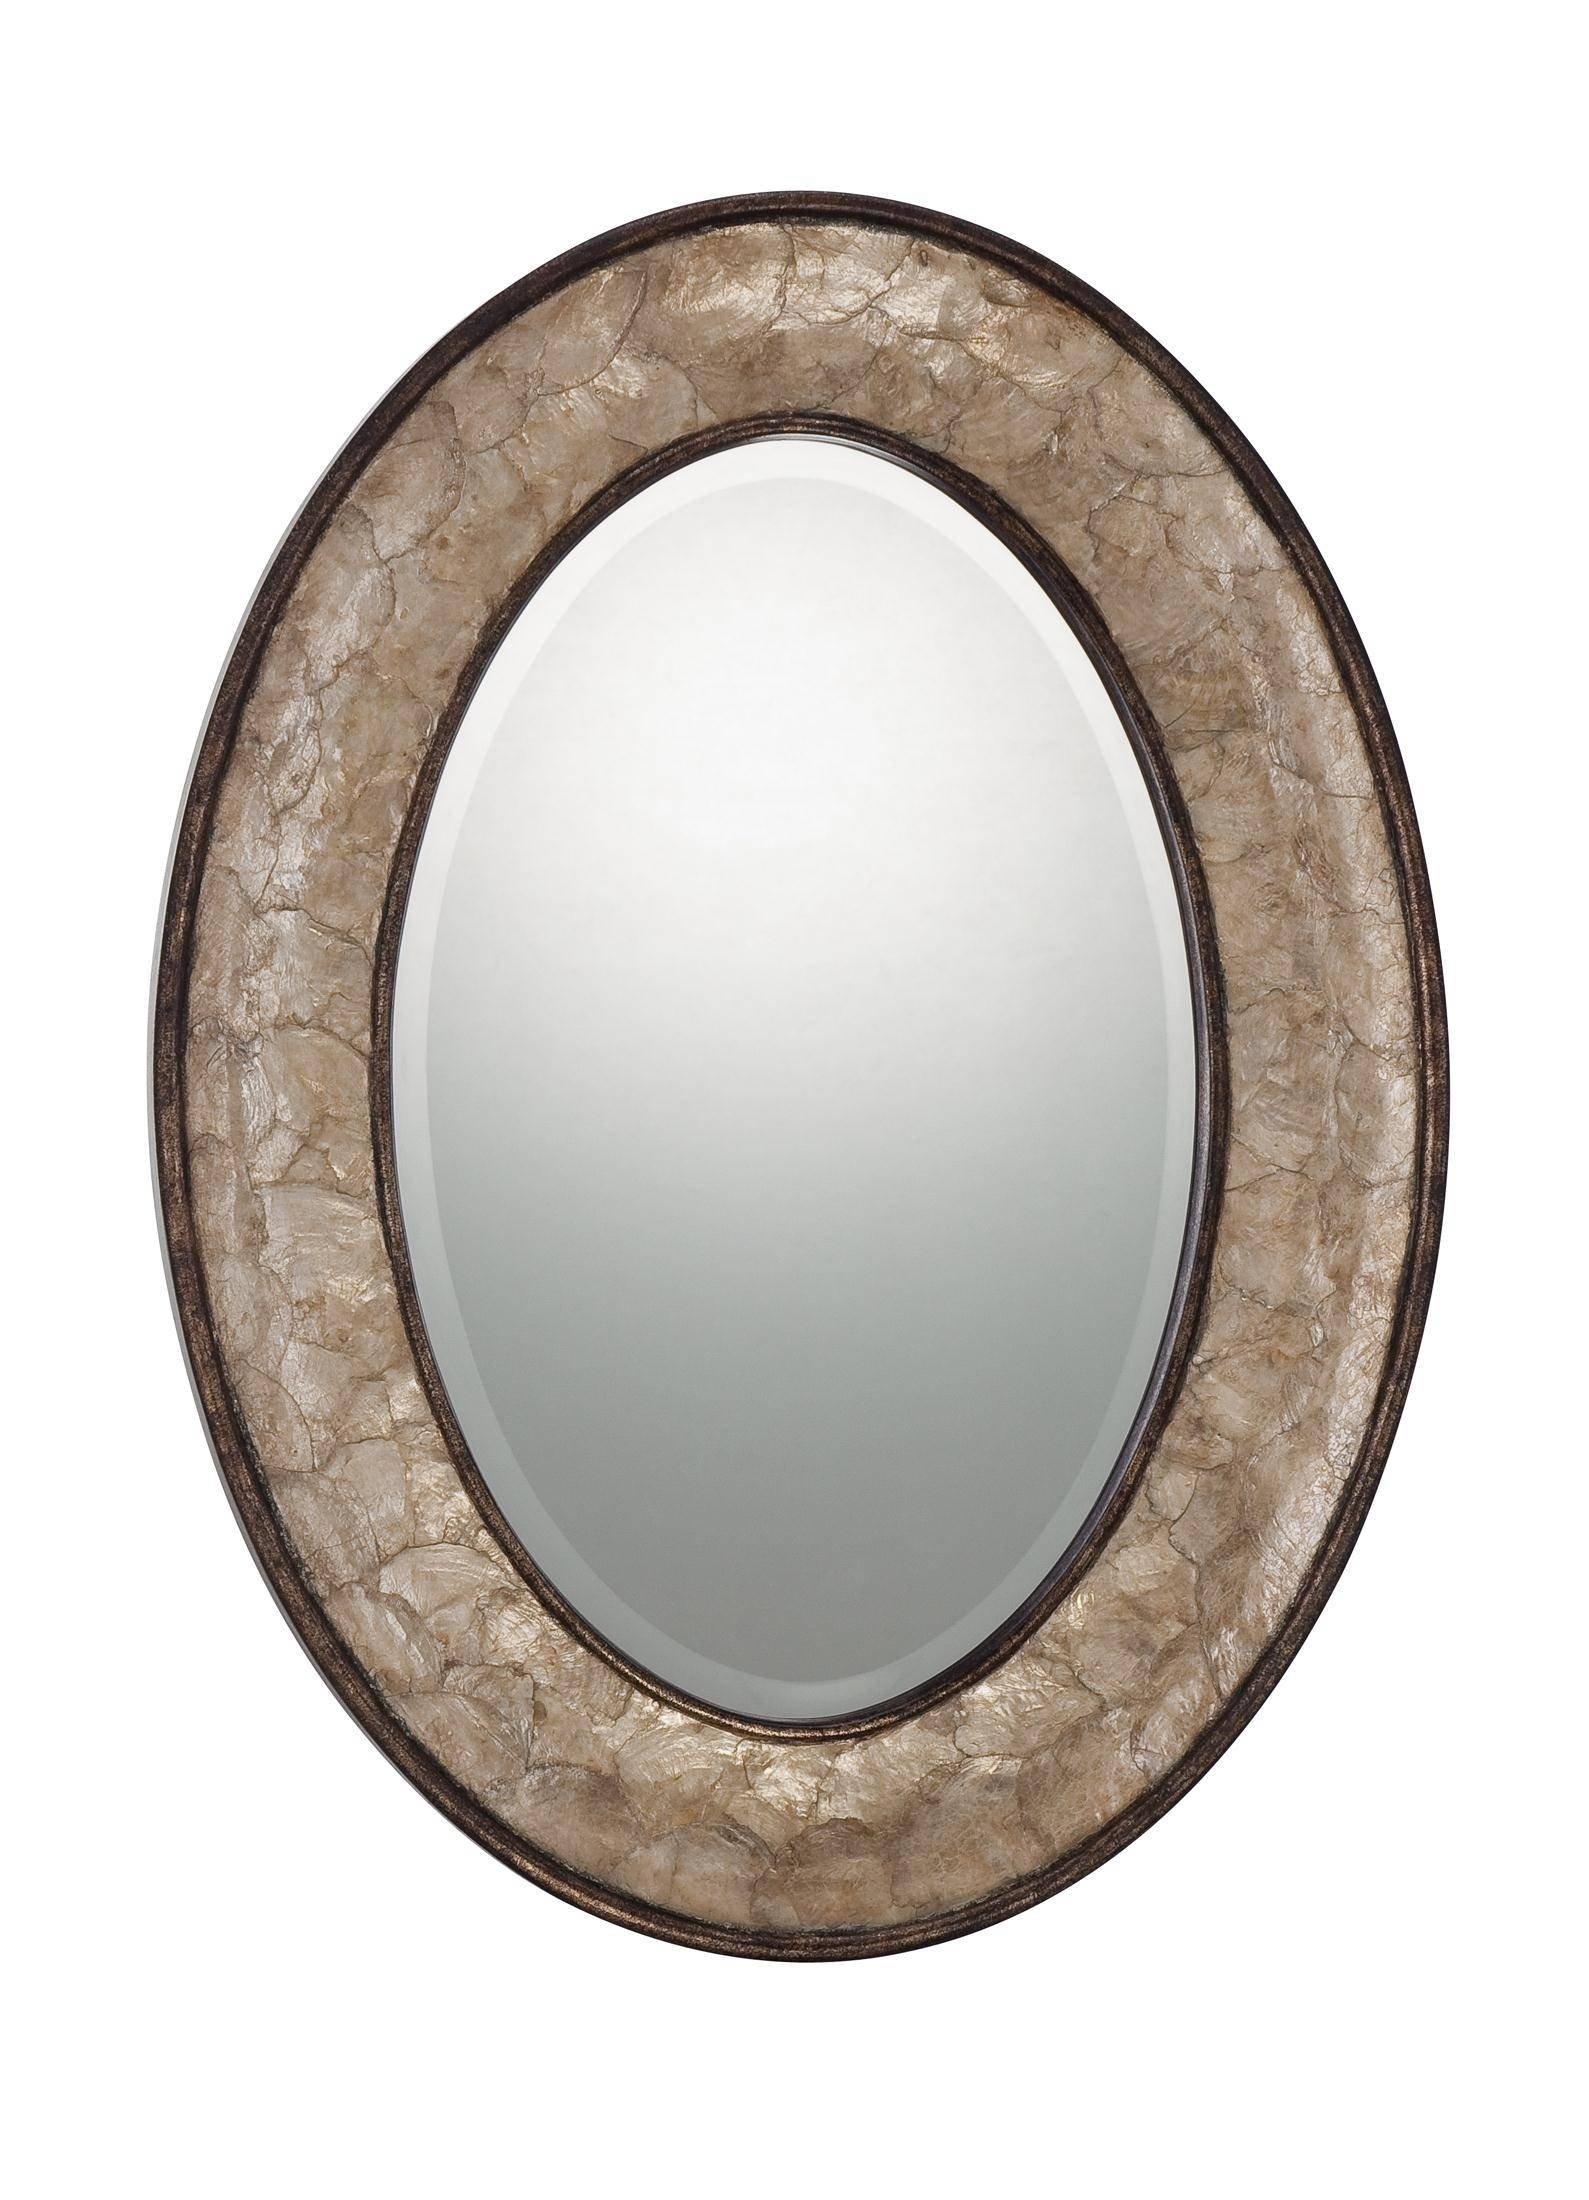 Oval Bathroom Mirrors Beautiful | Home Designjohn For Oval Wall Mirrors (View 18 of 25)